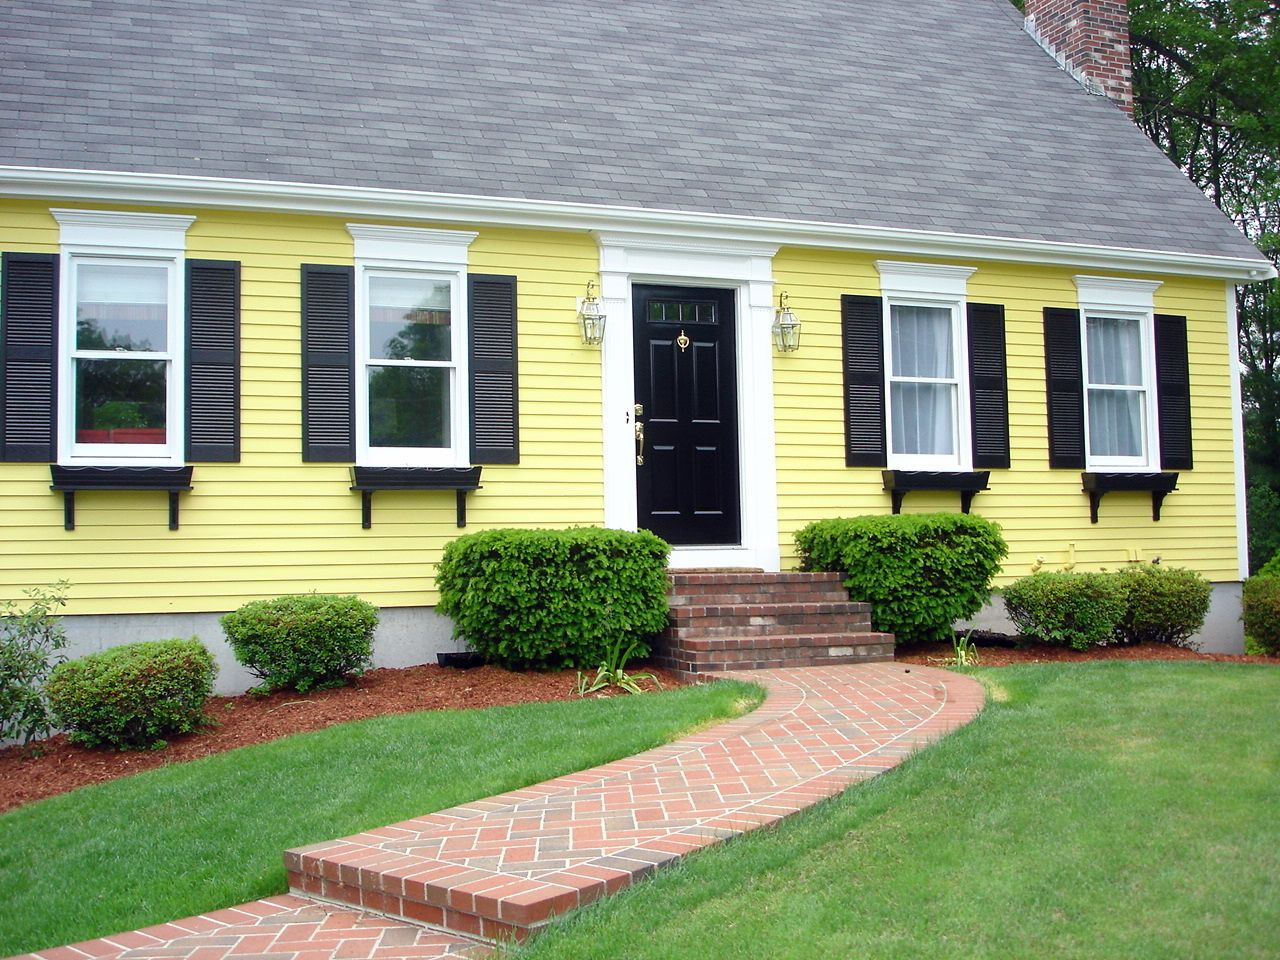 Yellow Exterior Paint Scheme Home Decorating Pinterest Exterior Paint Schemes Paint